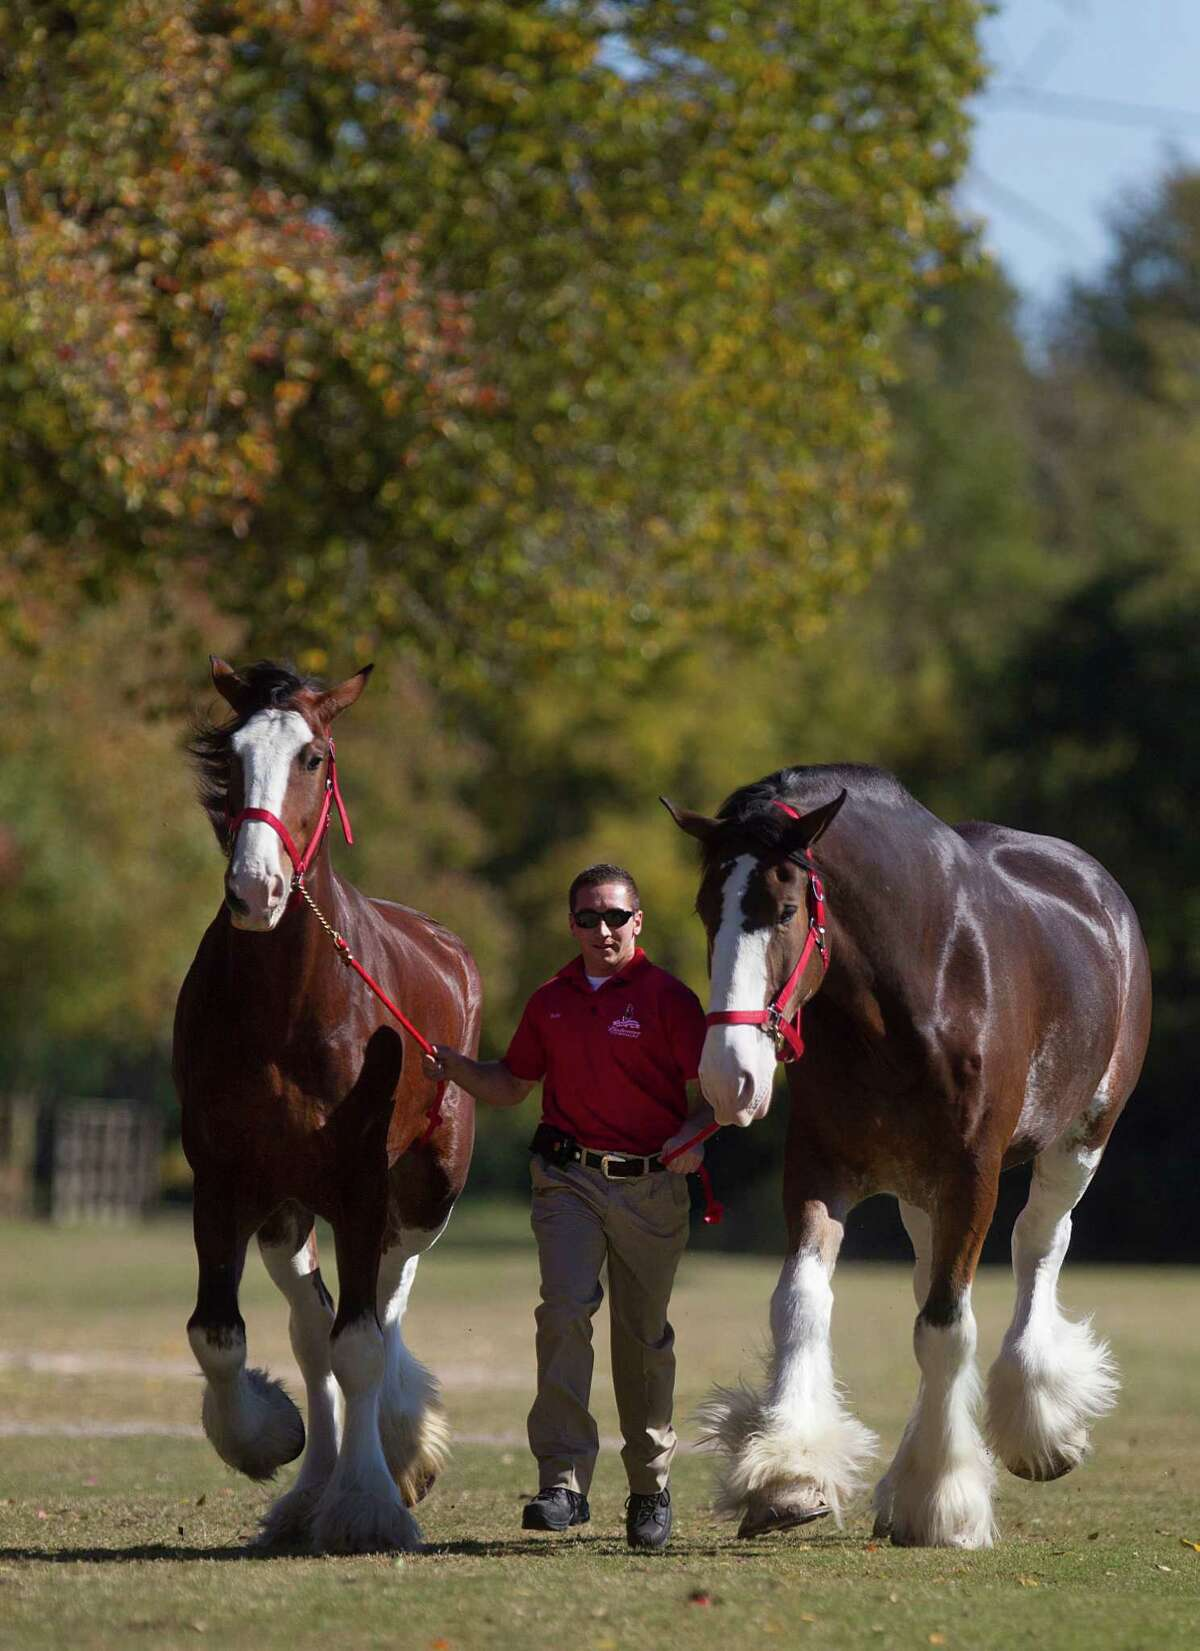 Rudy Helmuth walks Roger, right, and Fire, Budweiser Clydesdales at the Houston Polo Club as 10 Budweiser Clydesdales were walked, washed and trimmed for their appearance in the the 65th Annual H-E-B Thanksgiving Day Parade on Thursday, Nov. 27, 2014, in Houston. The parade begins at 9 a.m. downtown.